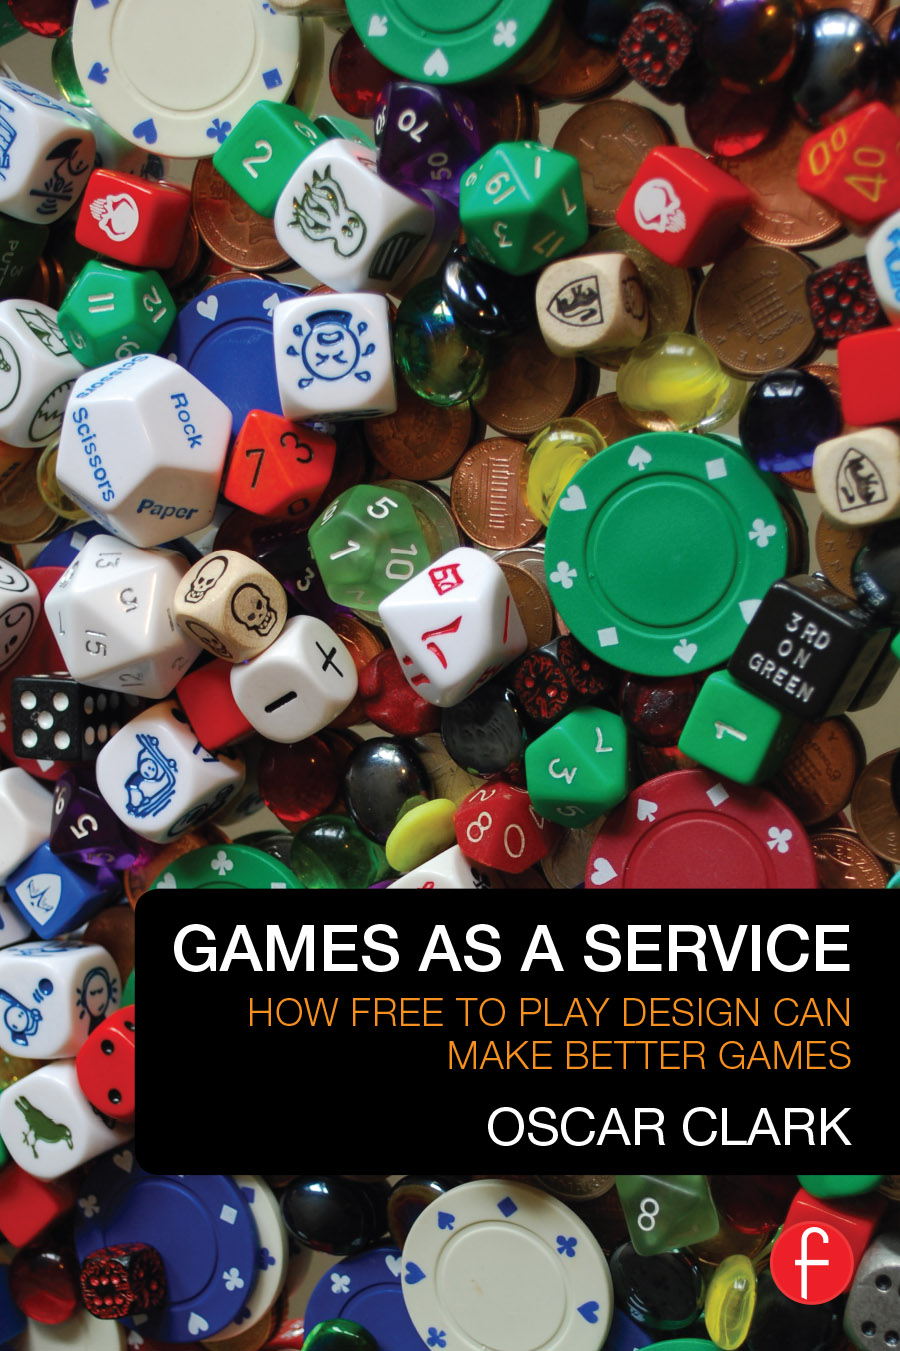 Games as a Service: How Free to Play Design can Make Better Games How Free to Play Design Can Make Better Games